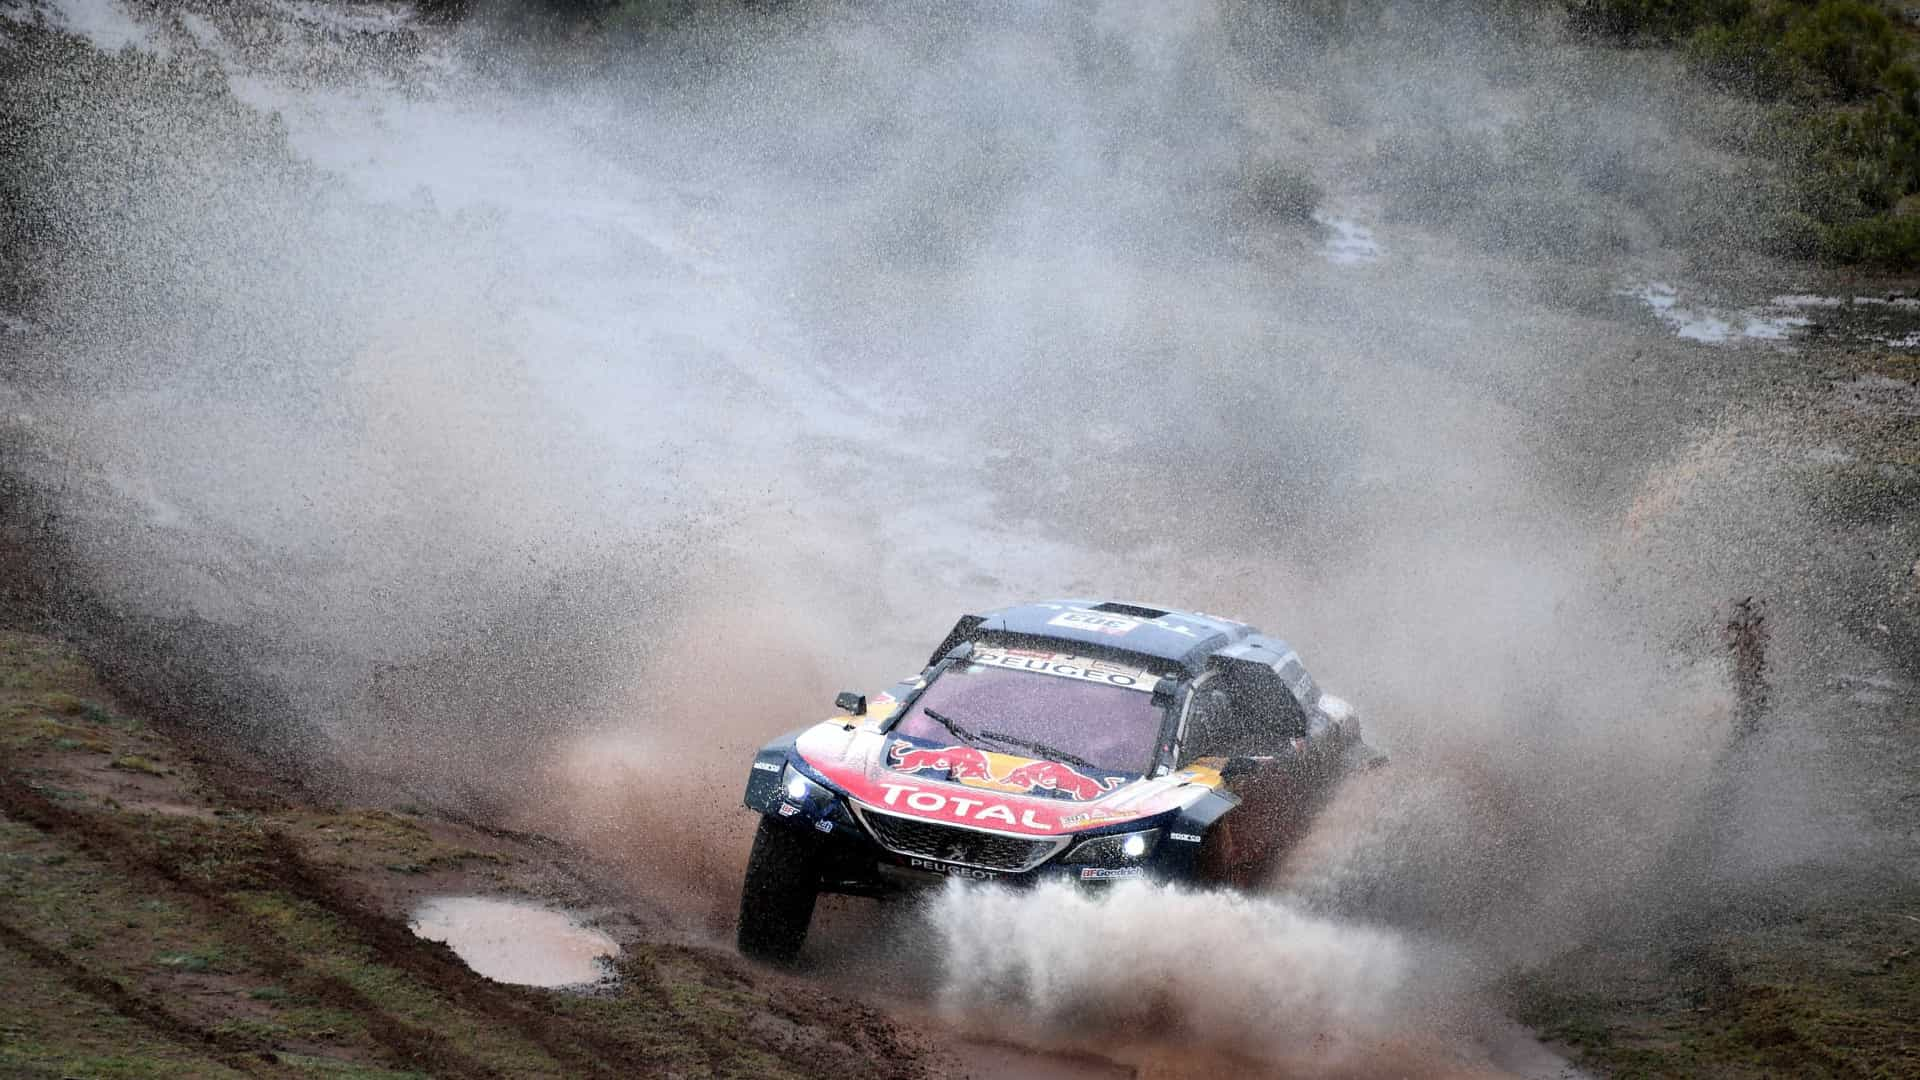 Sainz aproveita problema mecânico de Peterhansel e assume Rally Dakar